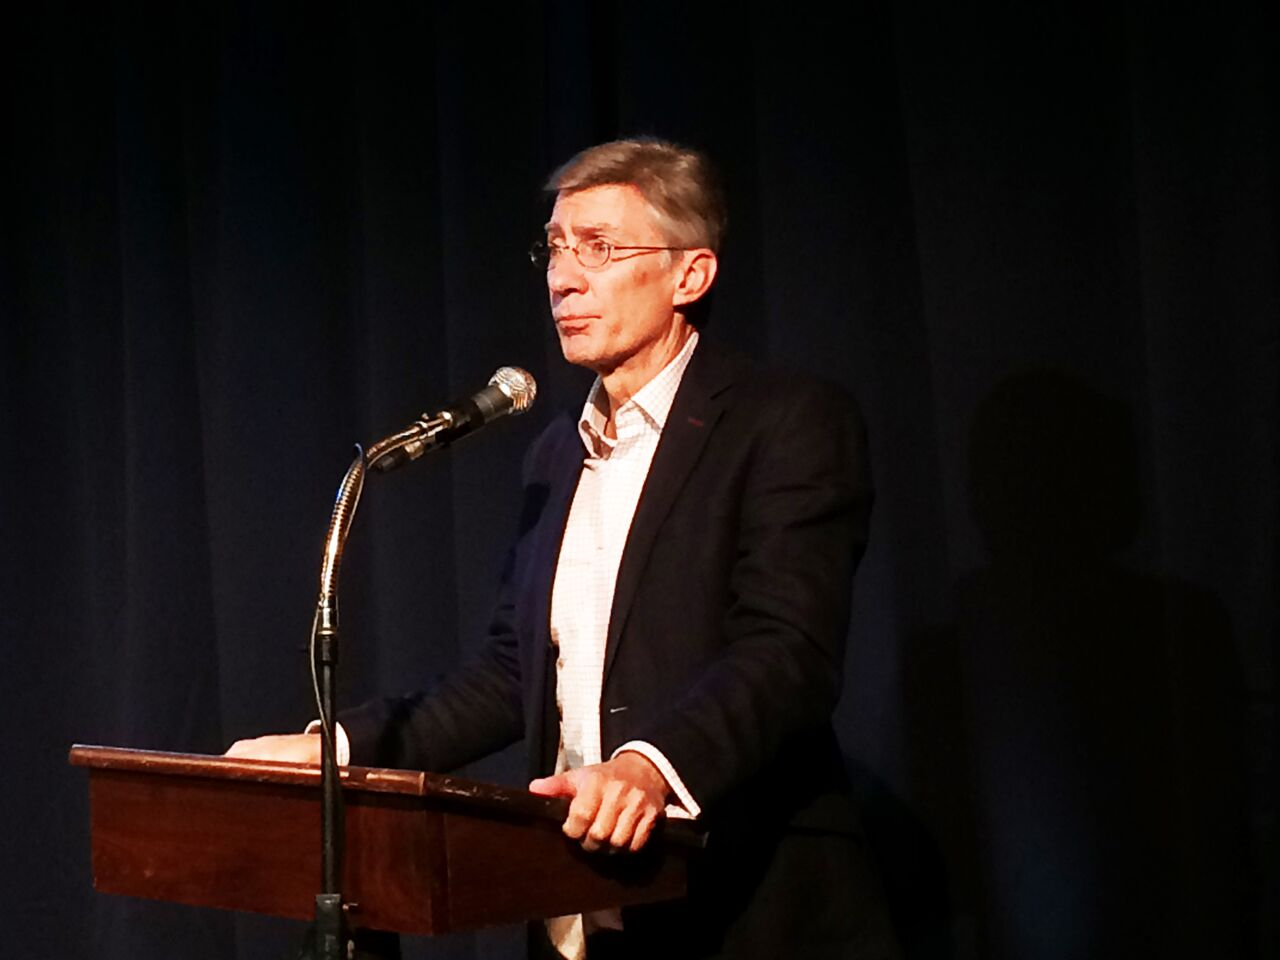 David Garrison at podium.jpg